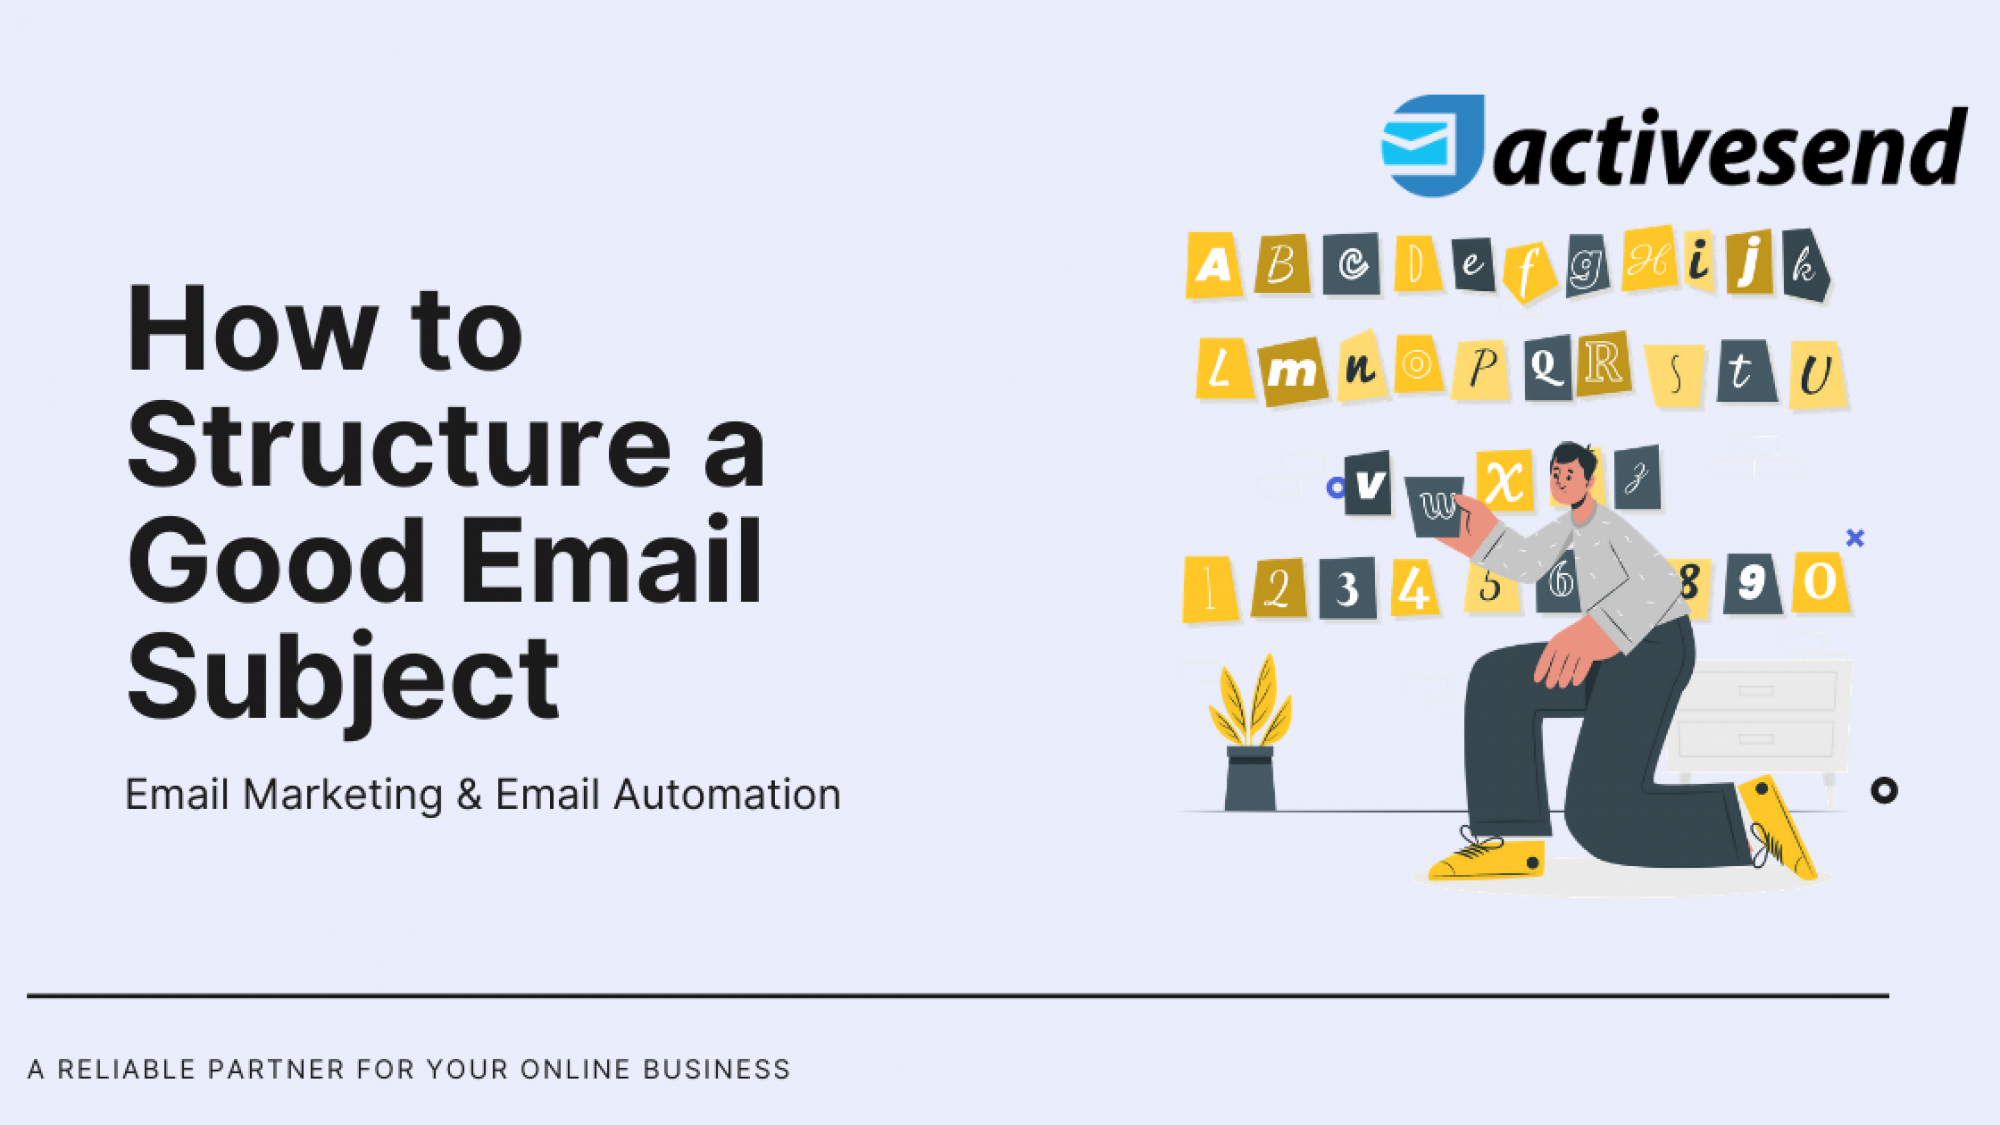 How to Structure a Good Email Subject